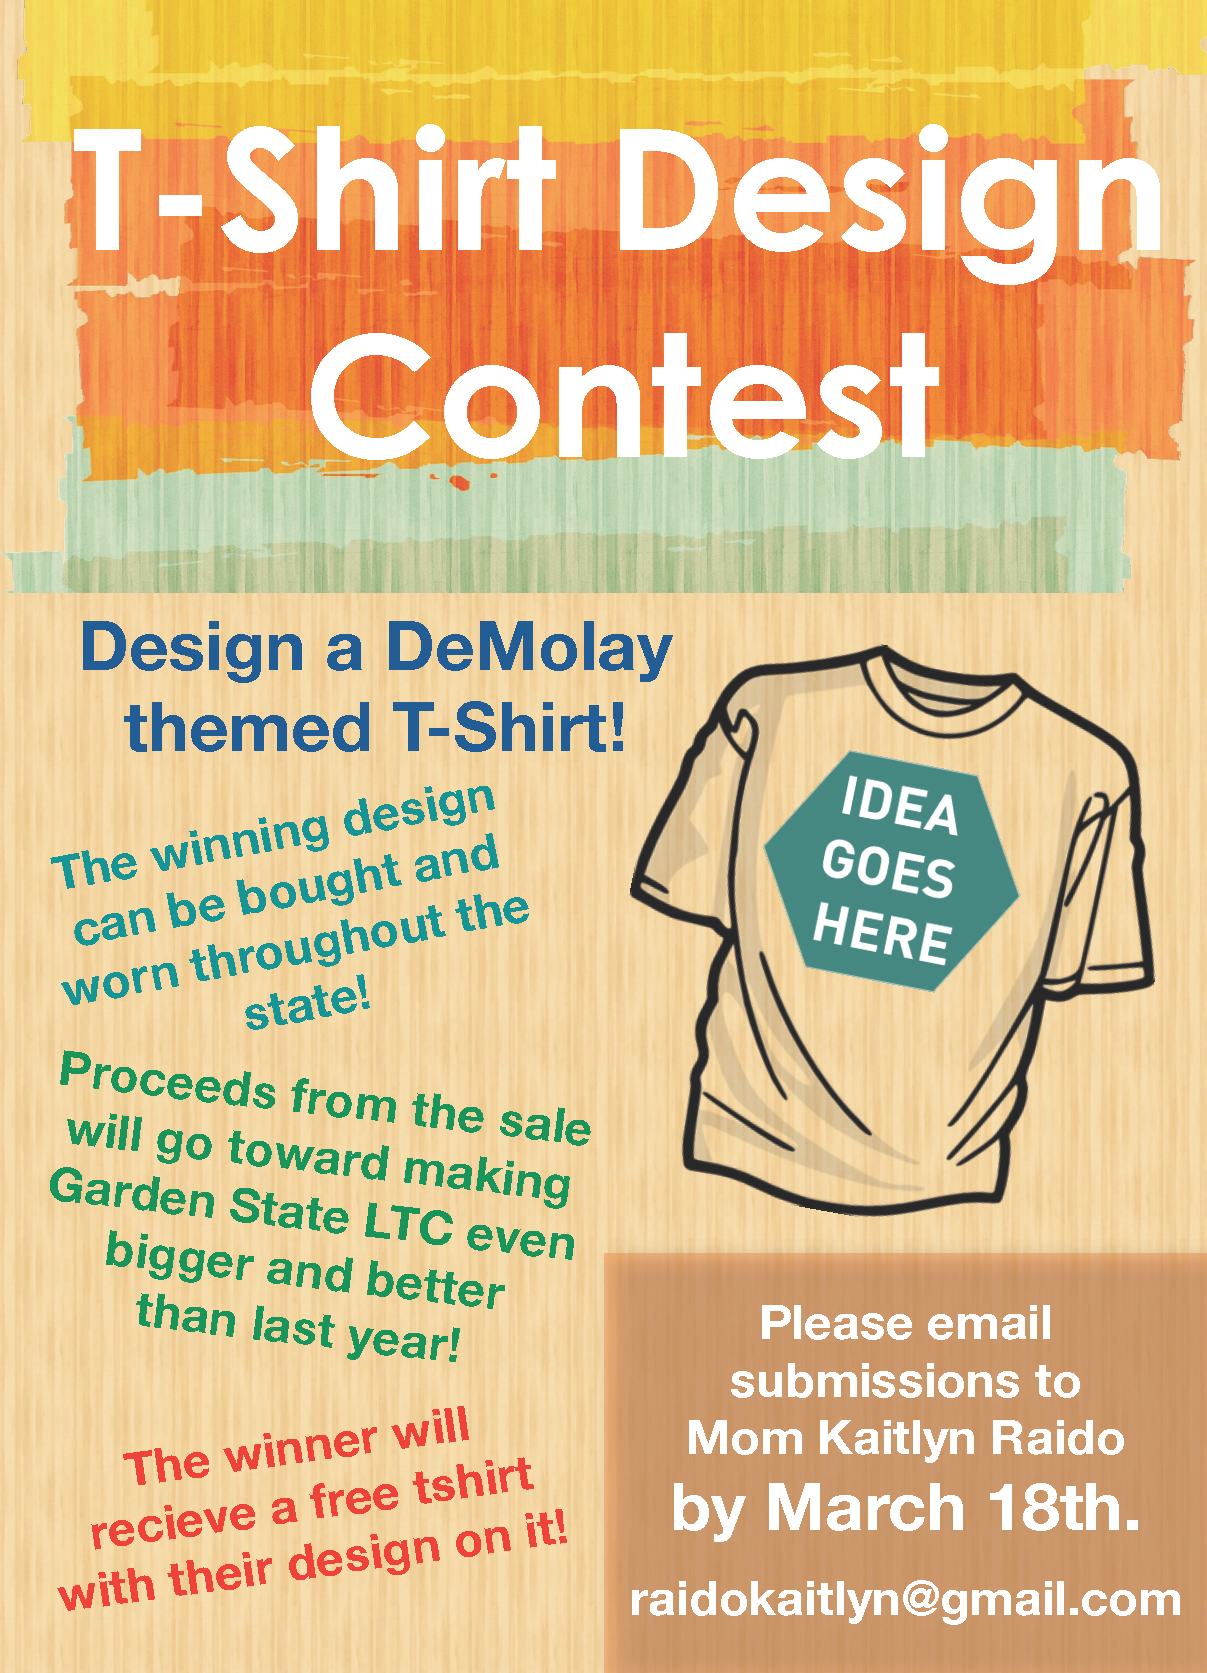 T shirt design contest nj demolay for T shirt design 2017